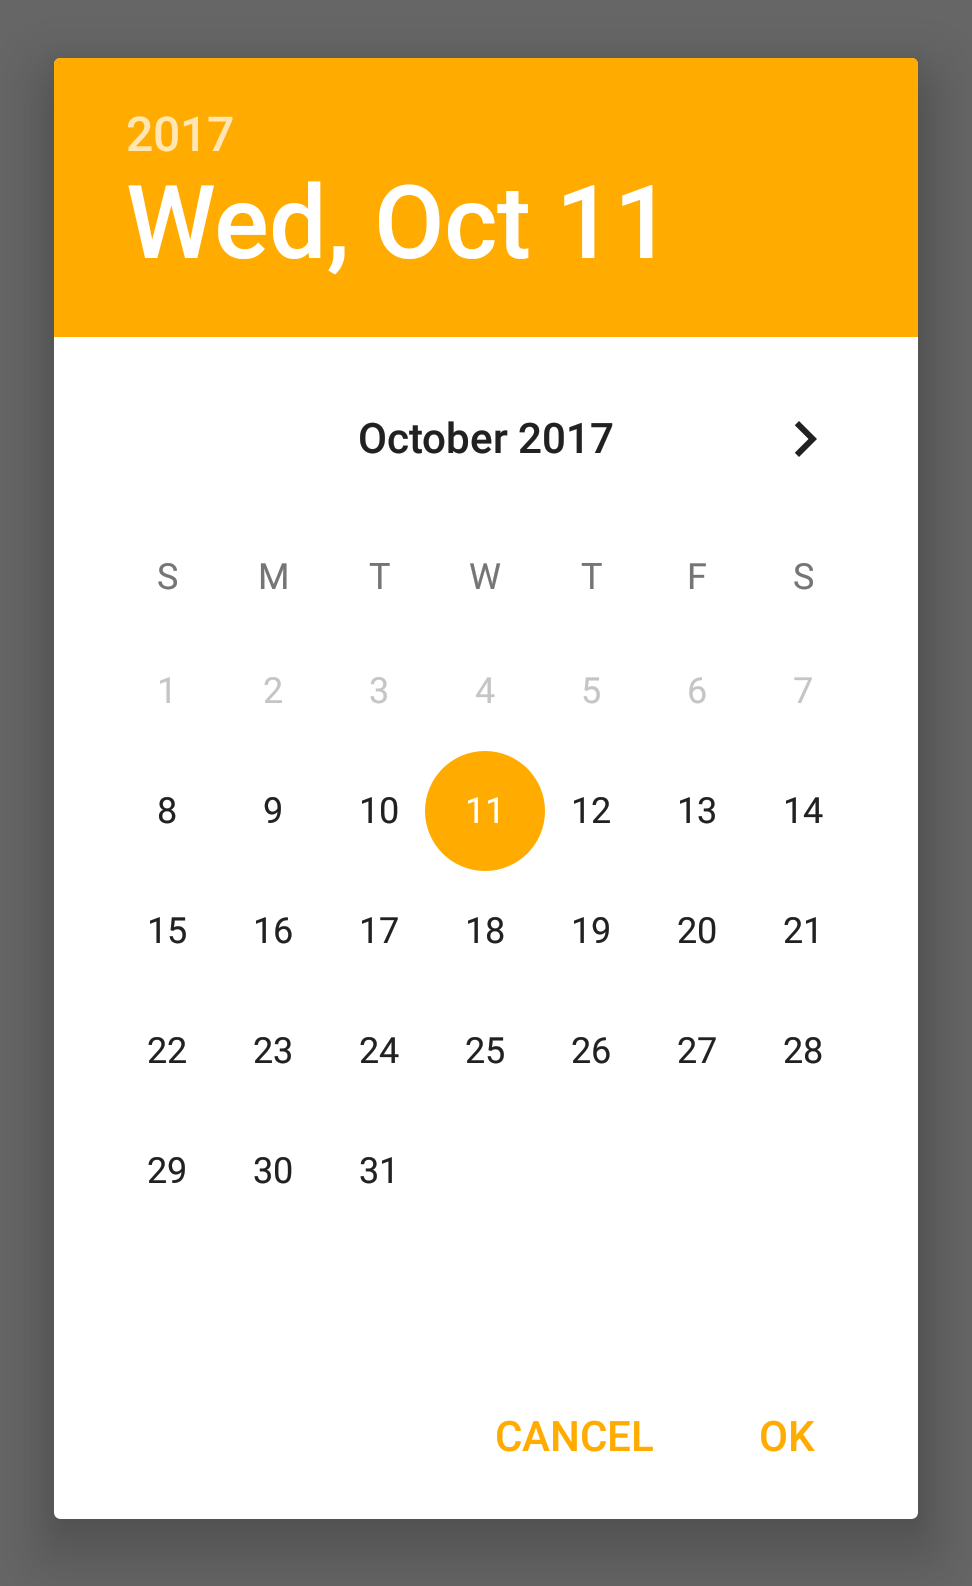 DateDialog on Android